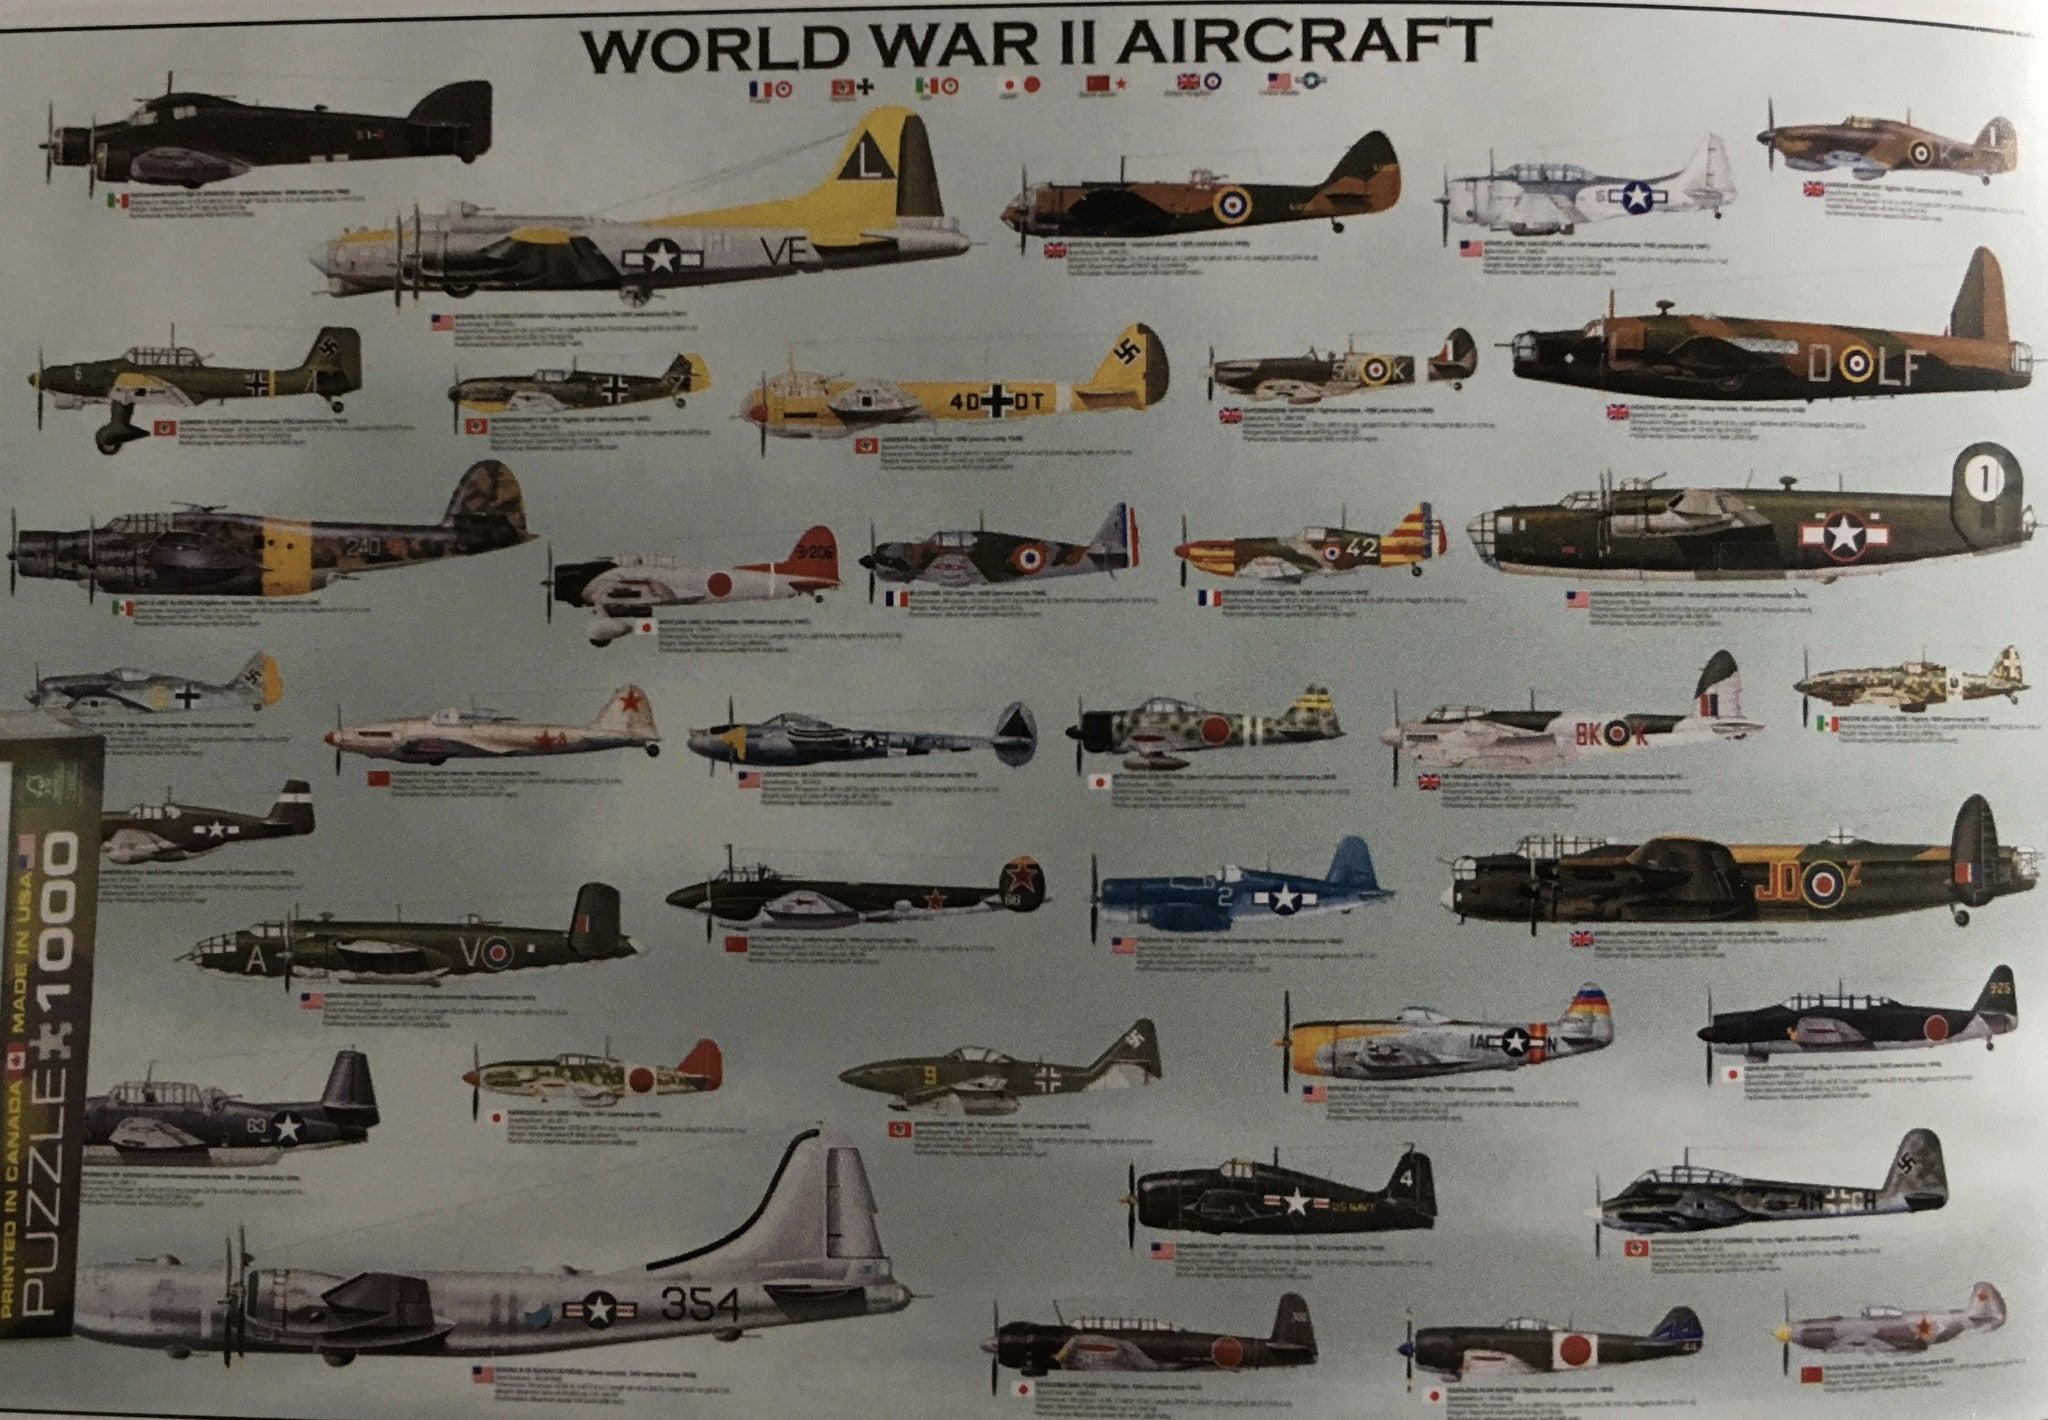 WWII Aircraft Poster